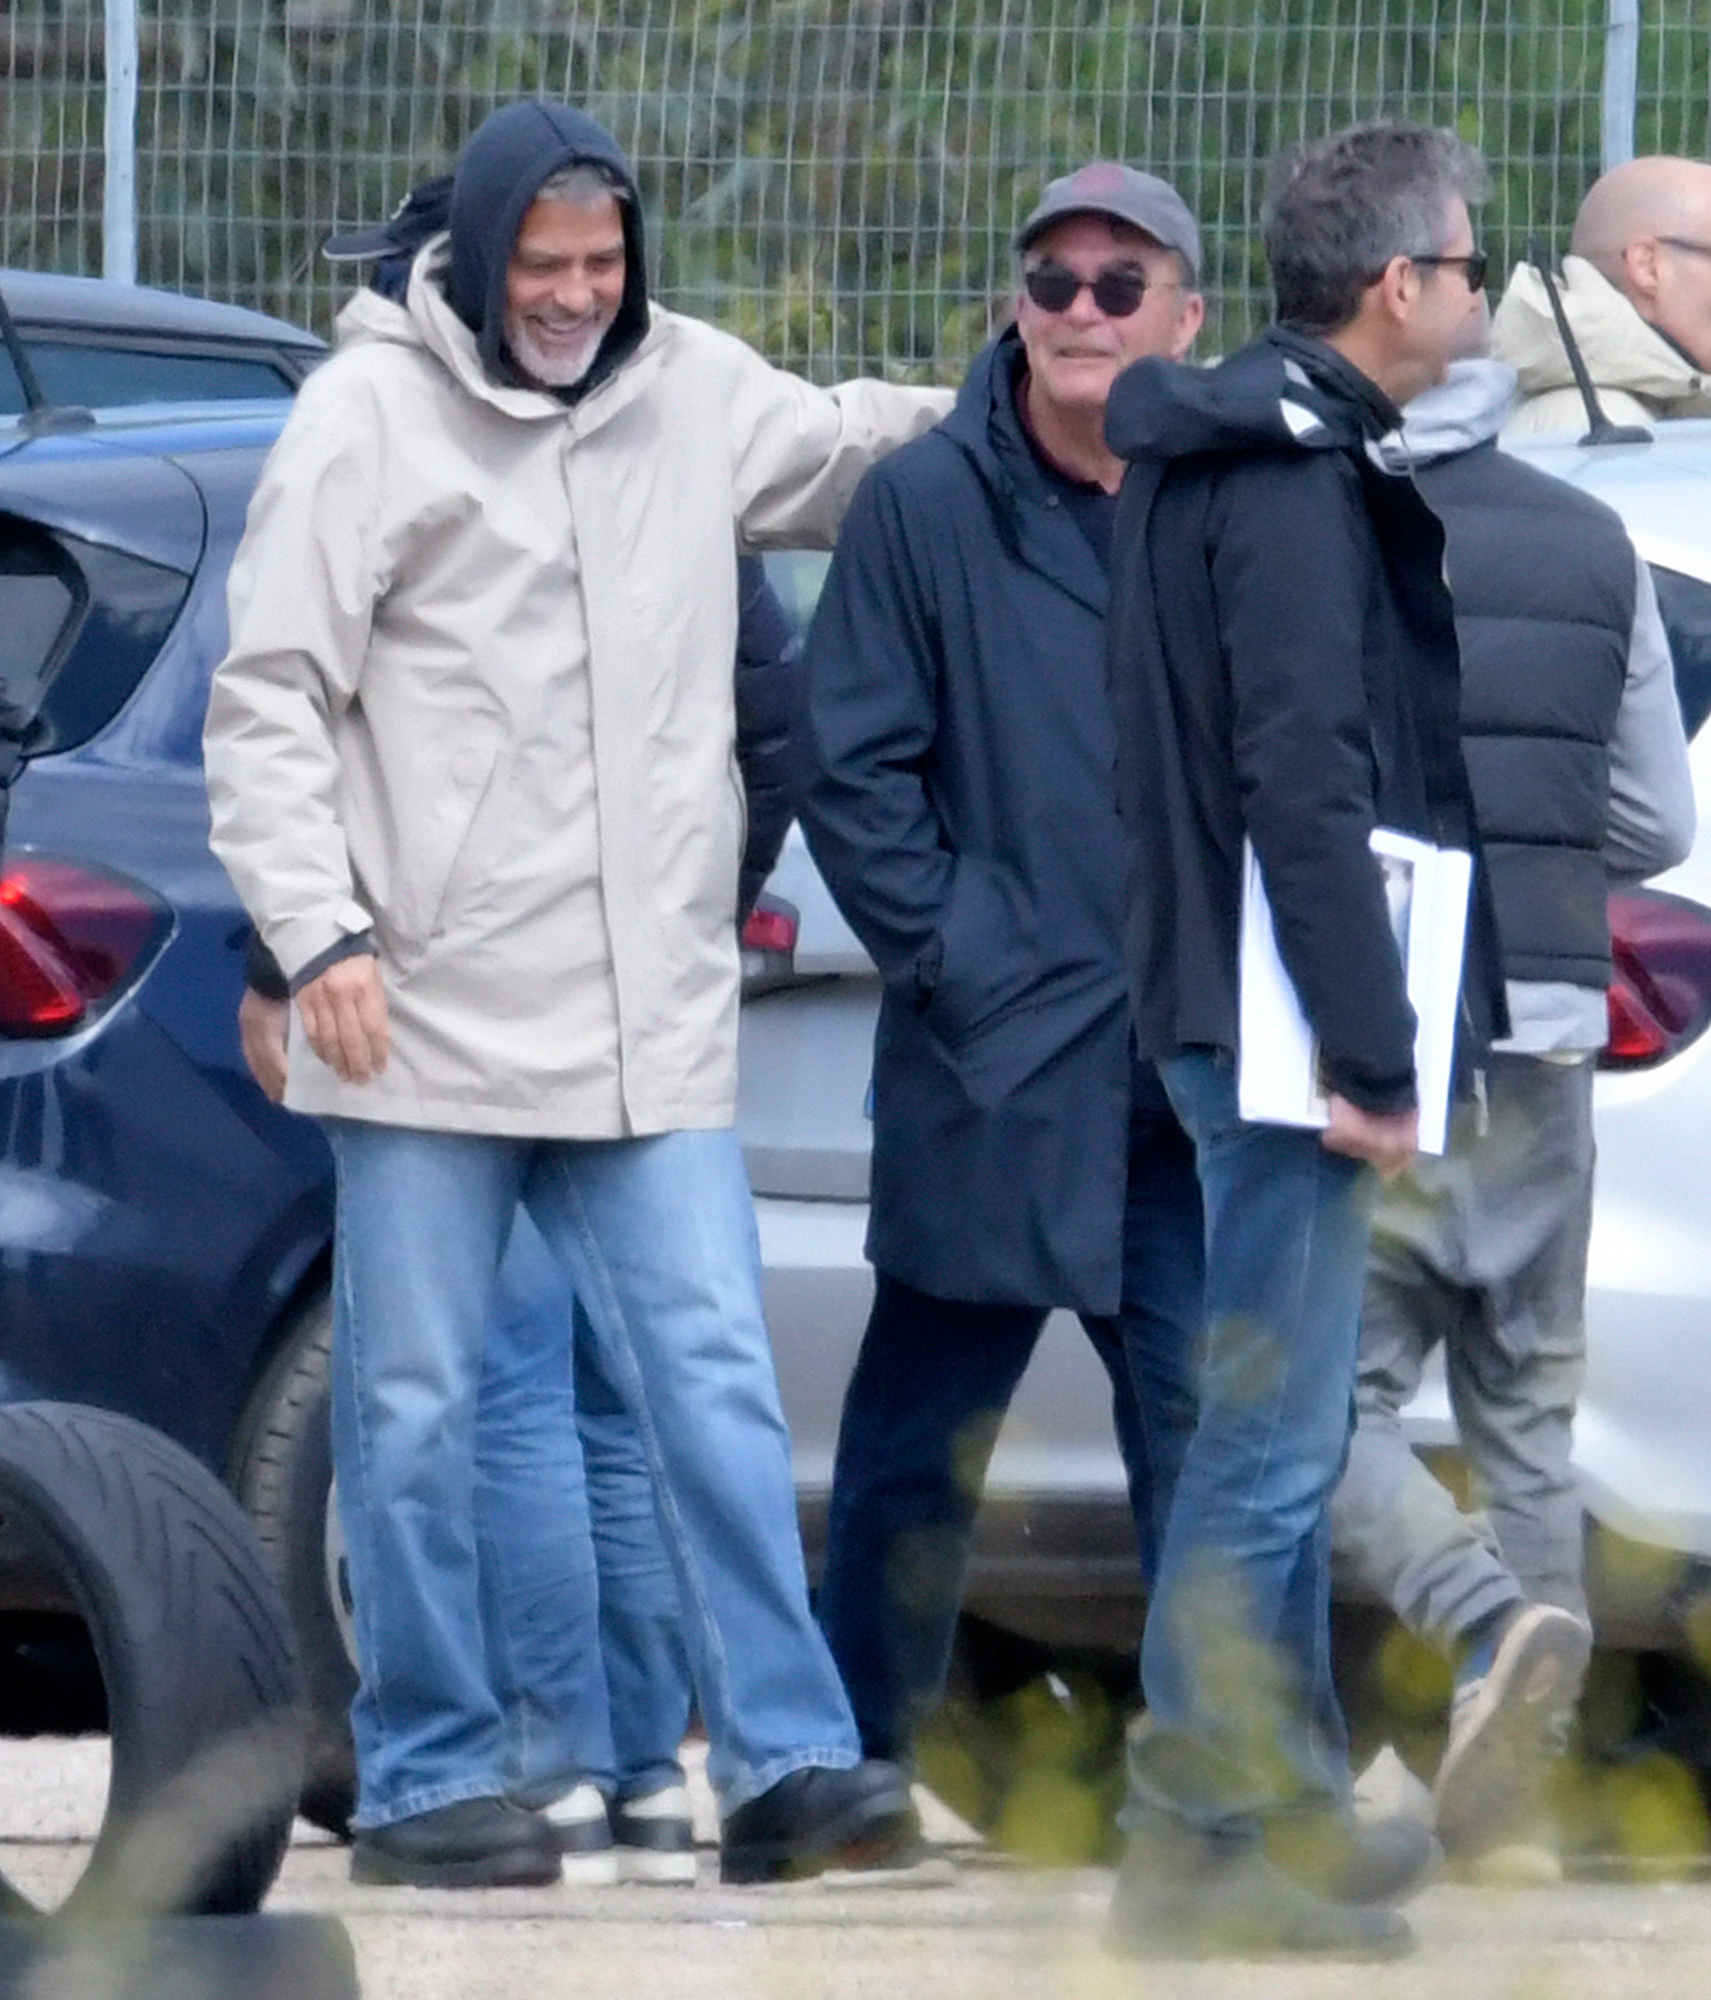 EXCLUSIVE: FIRST LOOK!  George Clooney is Spotted on Set of Catch-22 in Italy